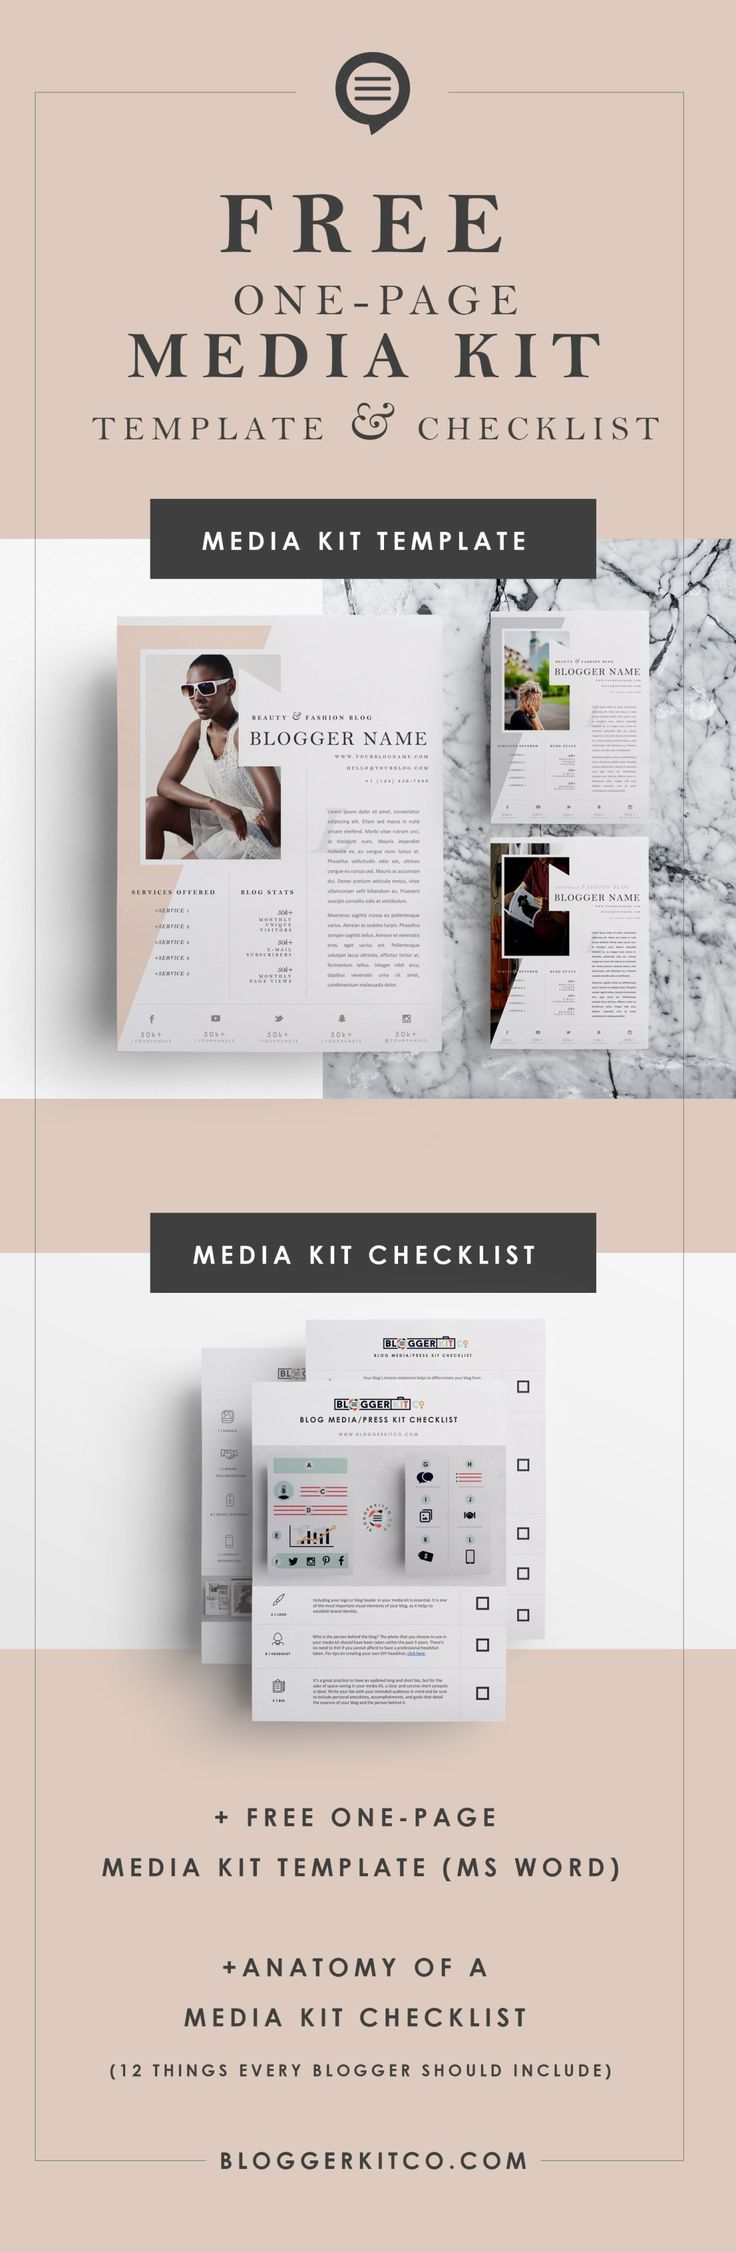 Cute 1 Page Resume Format Tiny 1 Page Resume Or 2 Solid 1.25 Button Template 10 Template Young 15660 Avery Template Dark16 Team Bracket Template 25  Best Ideas About Free Poster Templates On Pinterest | Party ..